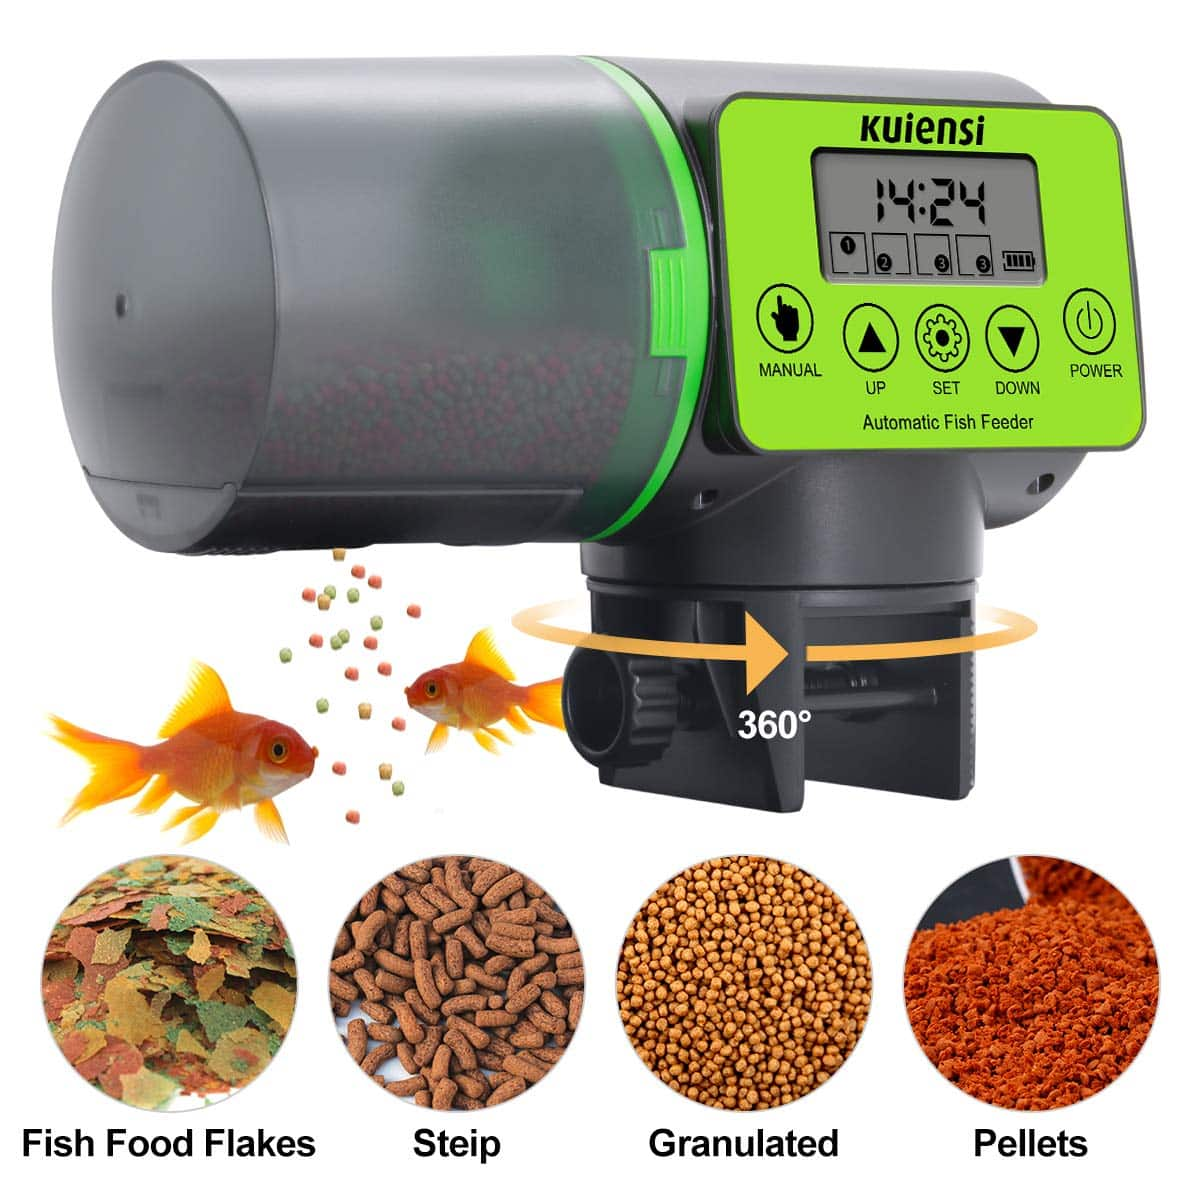 KUIENSI Automatic Fish Feeder